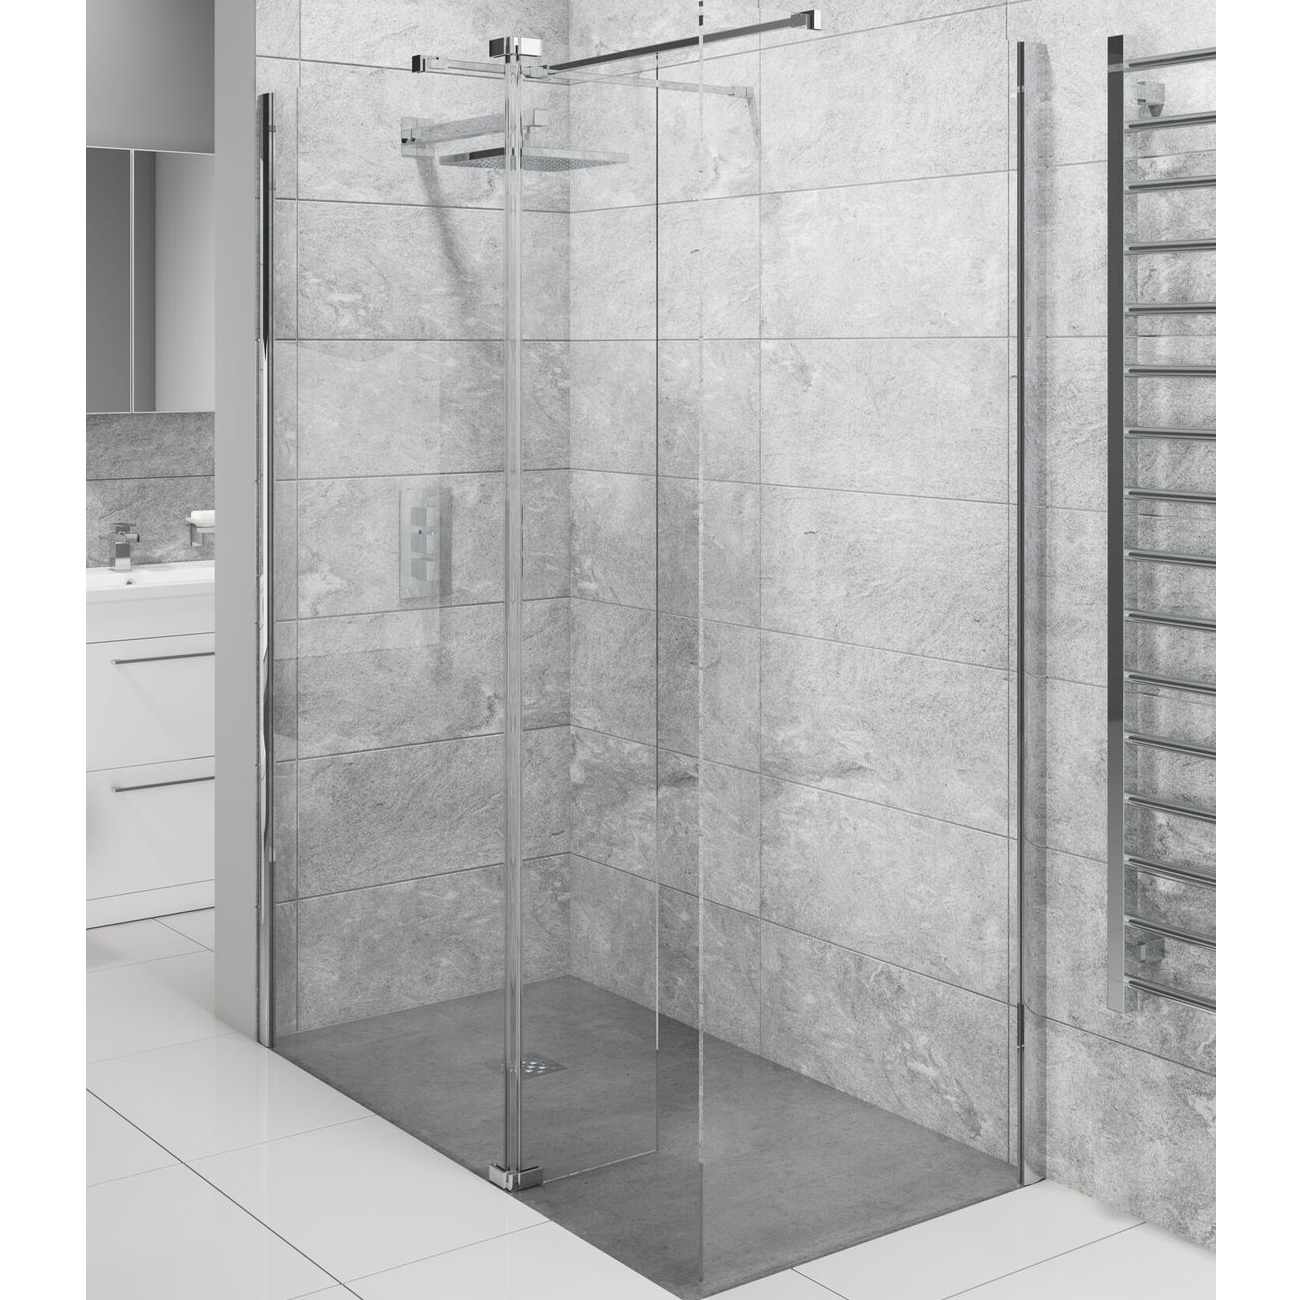 Cali Lana Easy Clean Wet Room Glass Panel 700mm Wide - 10mm Glass-5